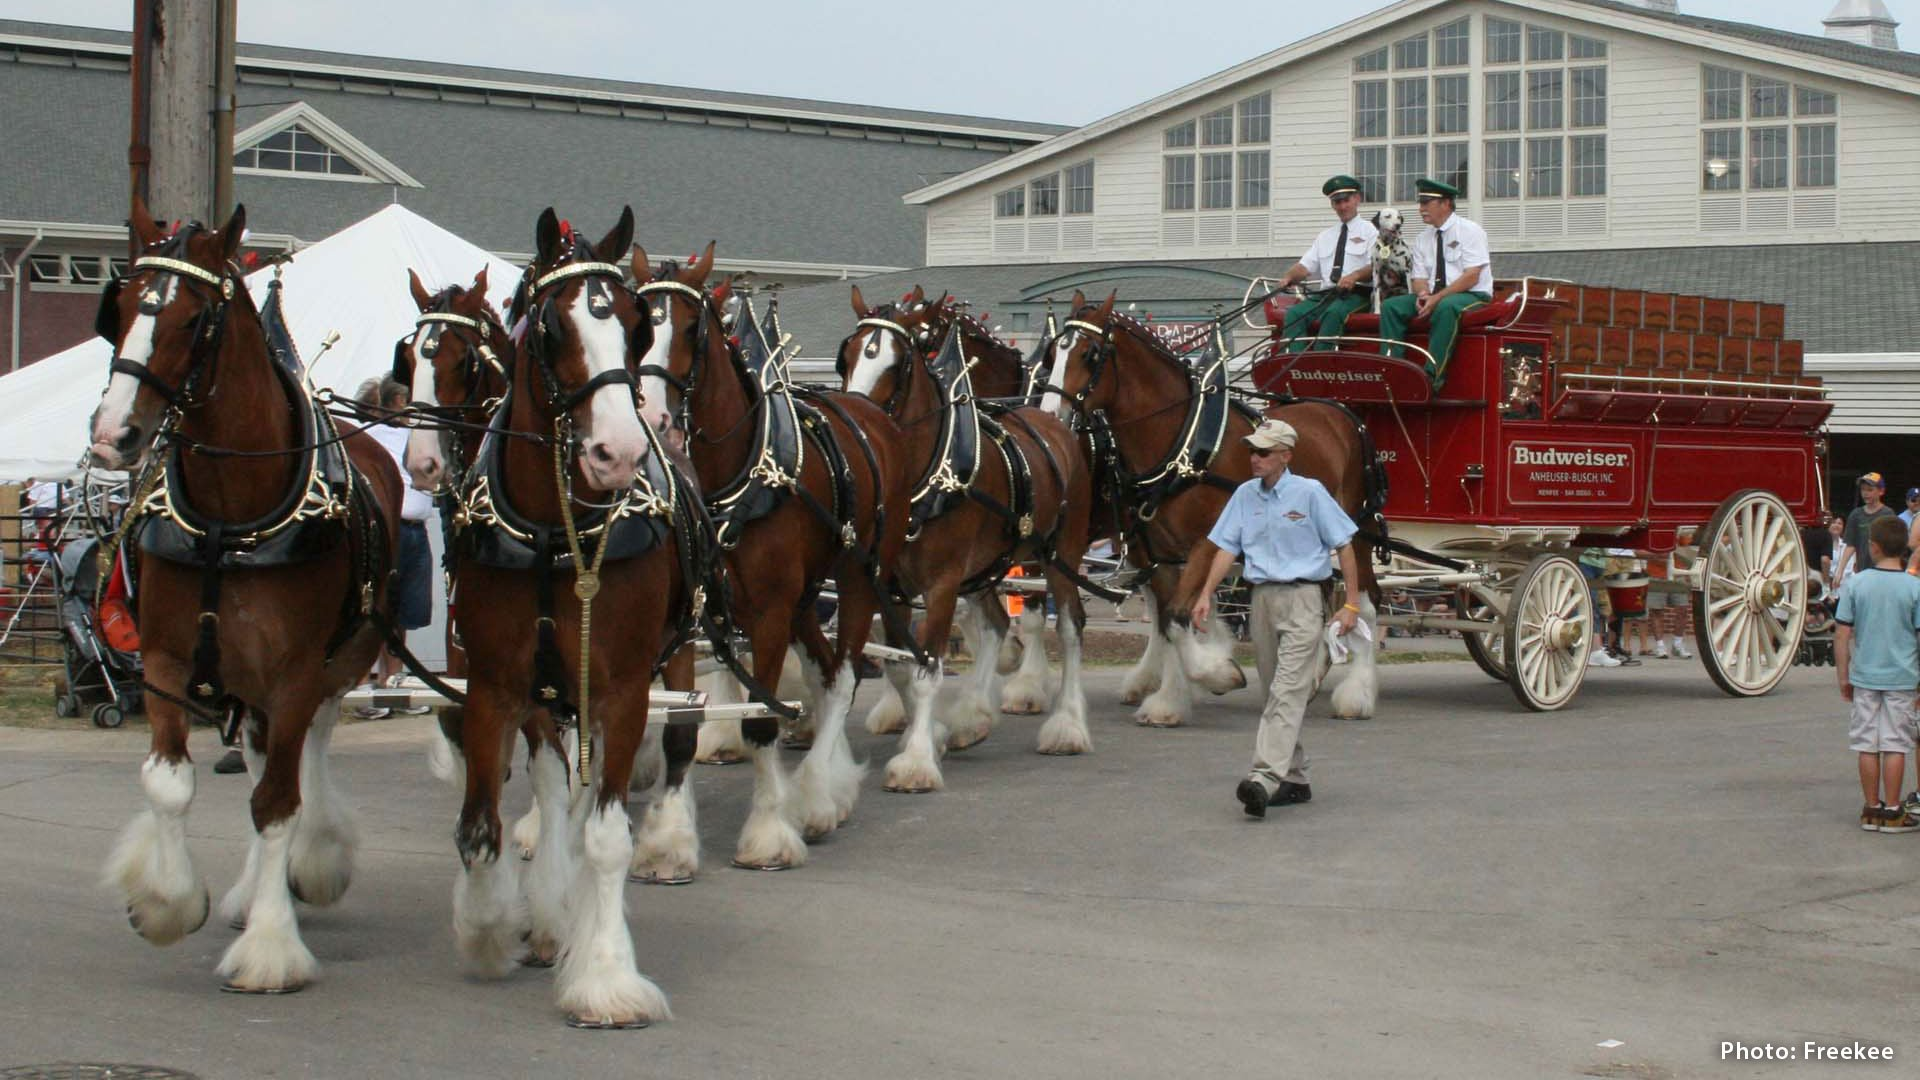 The Budweiser Clydesdales Essential Awe Inspiring Facts